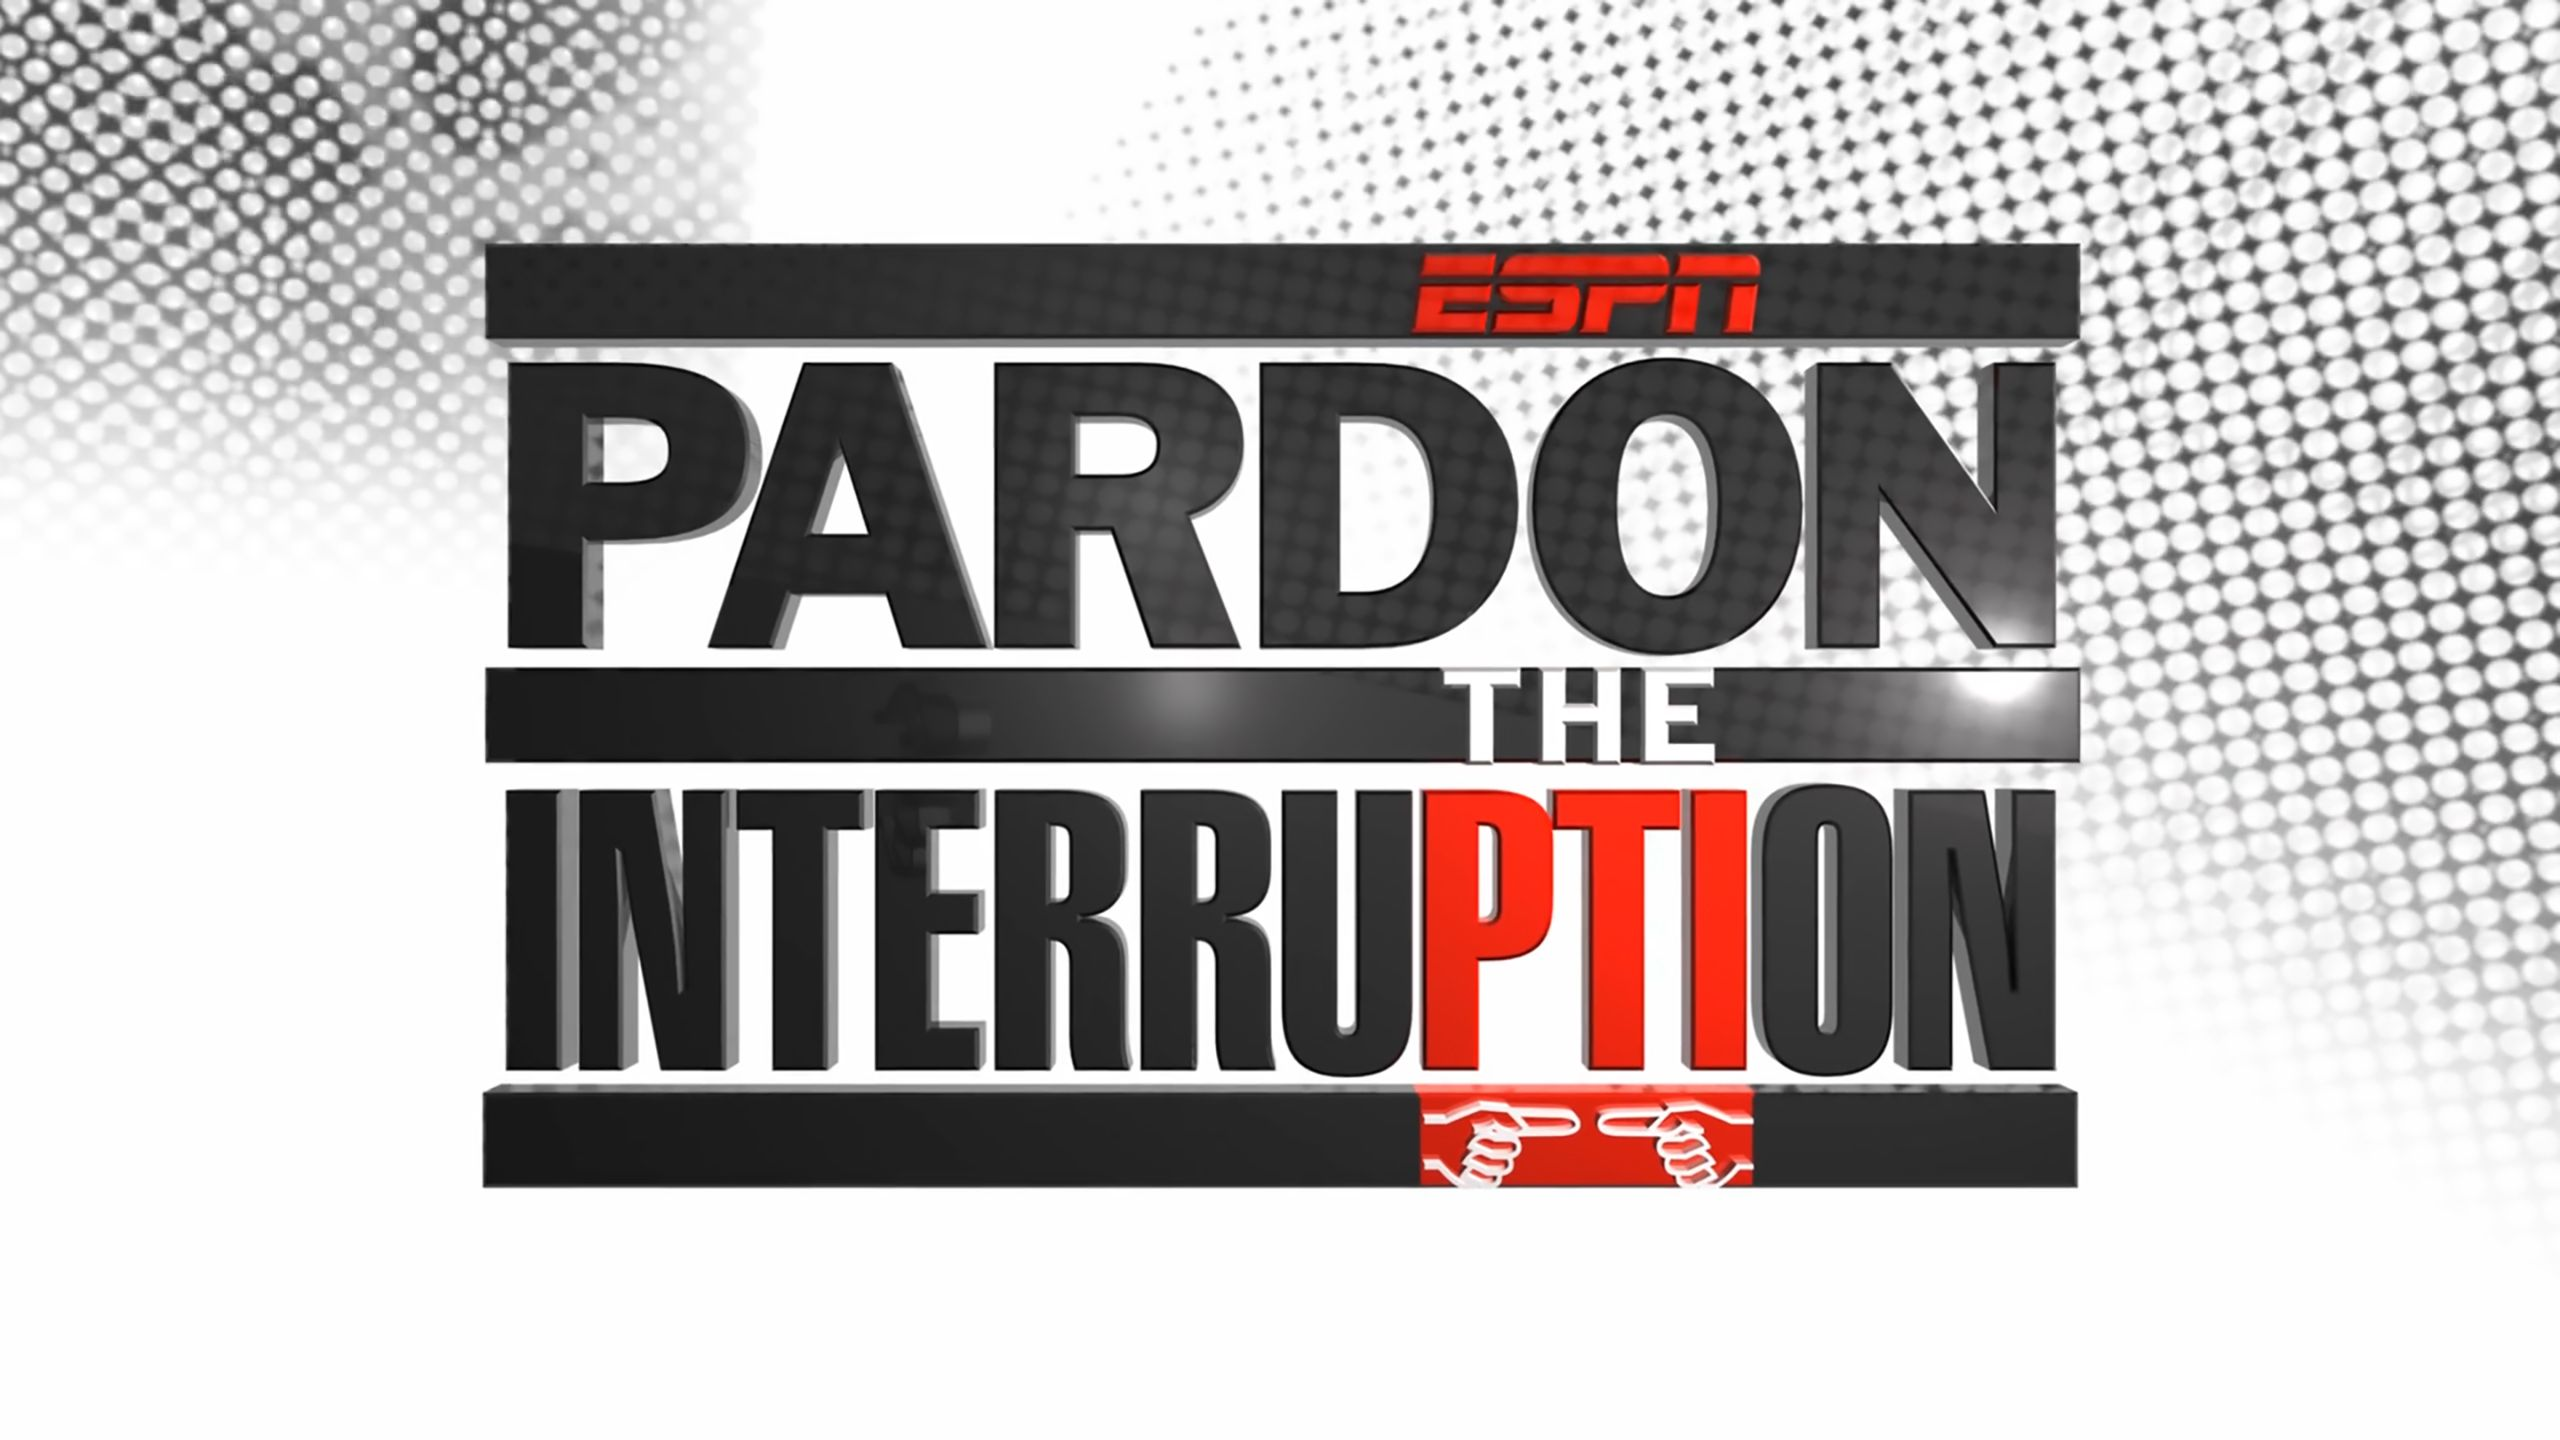 Mon, 8/13 - Pardon The Interruption